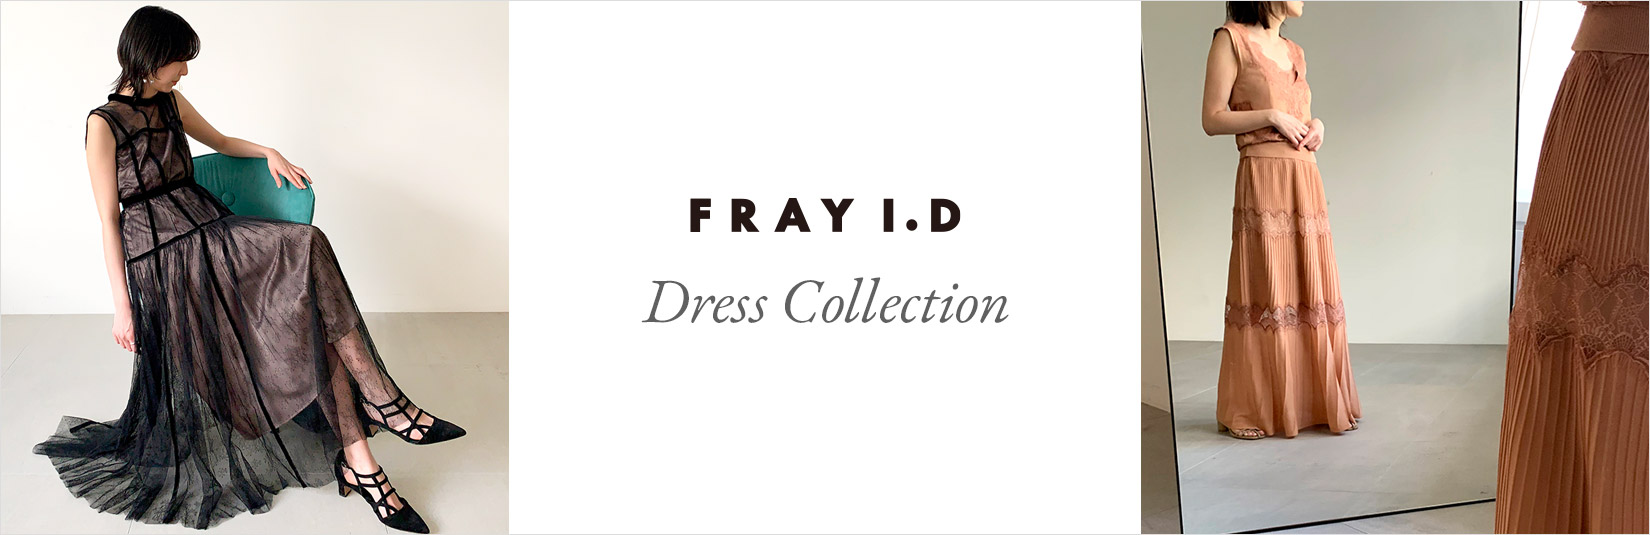 FRAY I.D - Dress Colleciton-